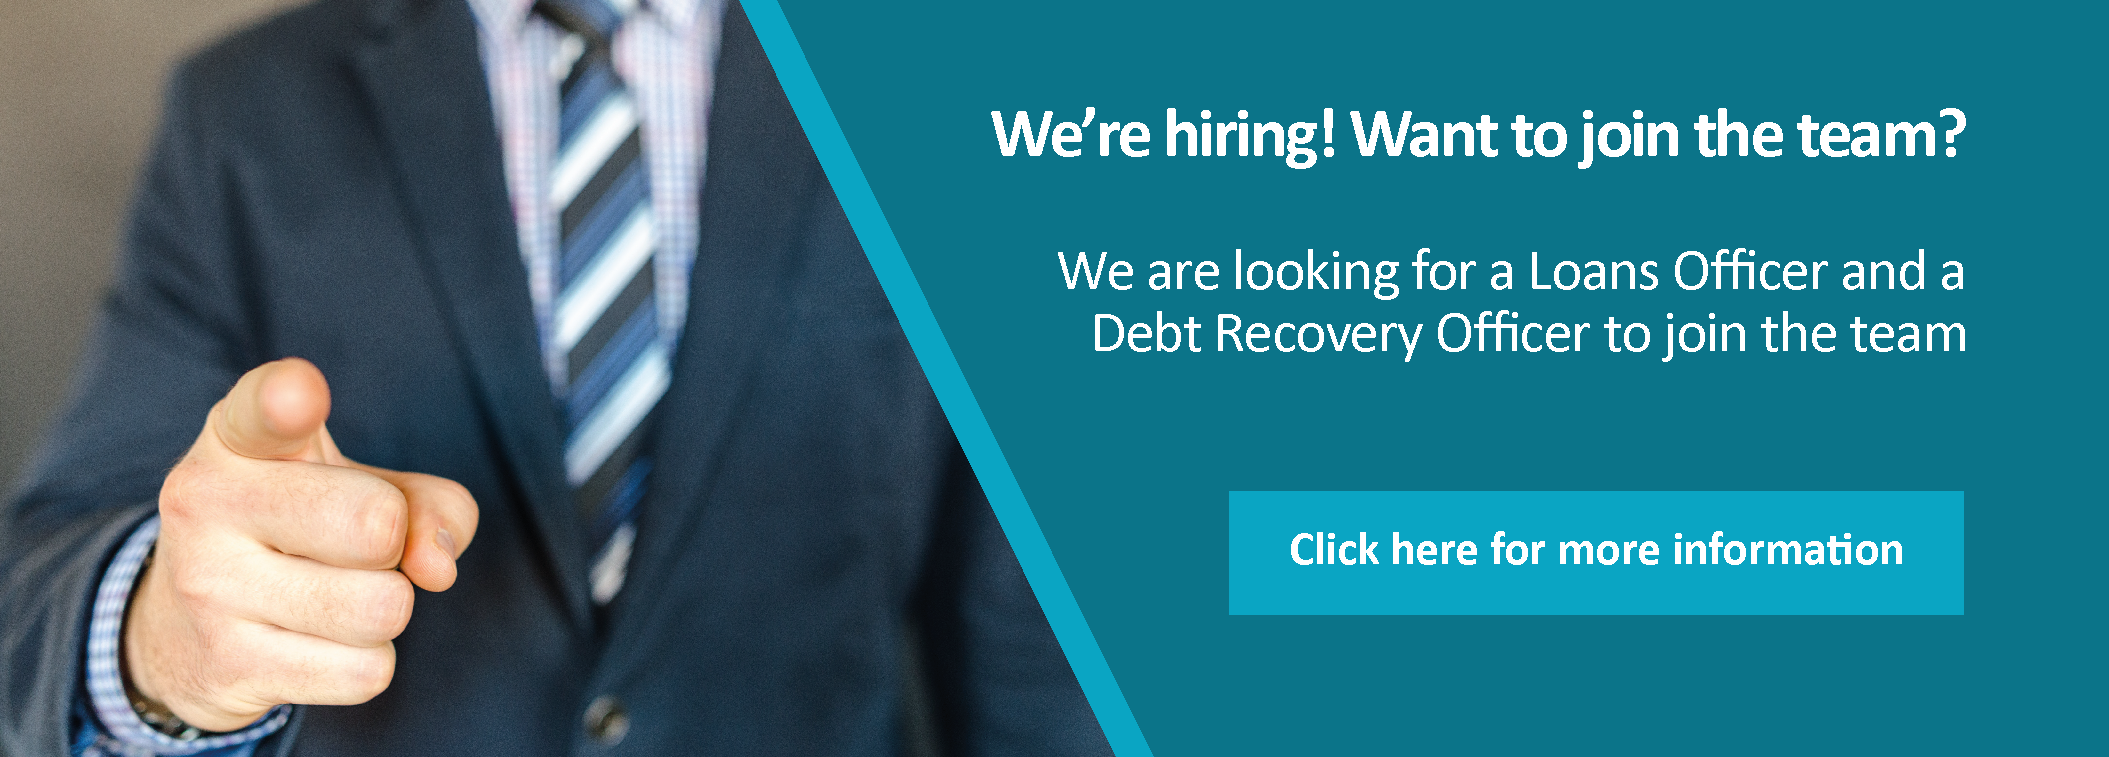 Job Vacancies - Loans Officer and Debt Recovery Officer